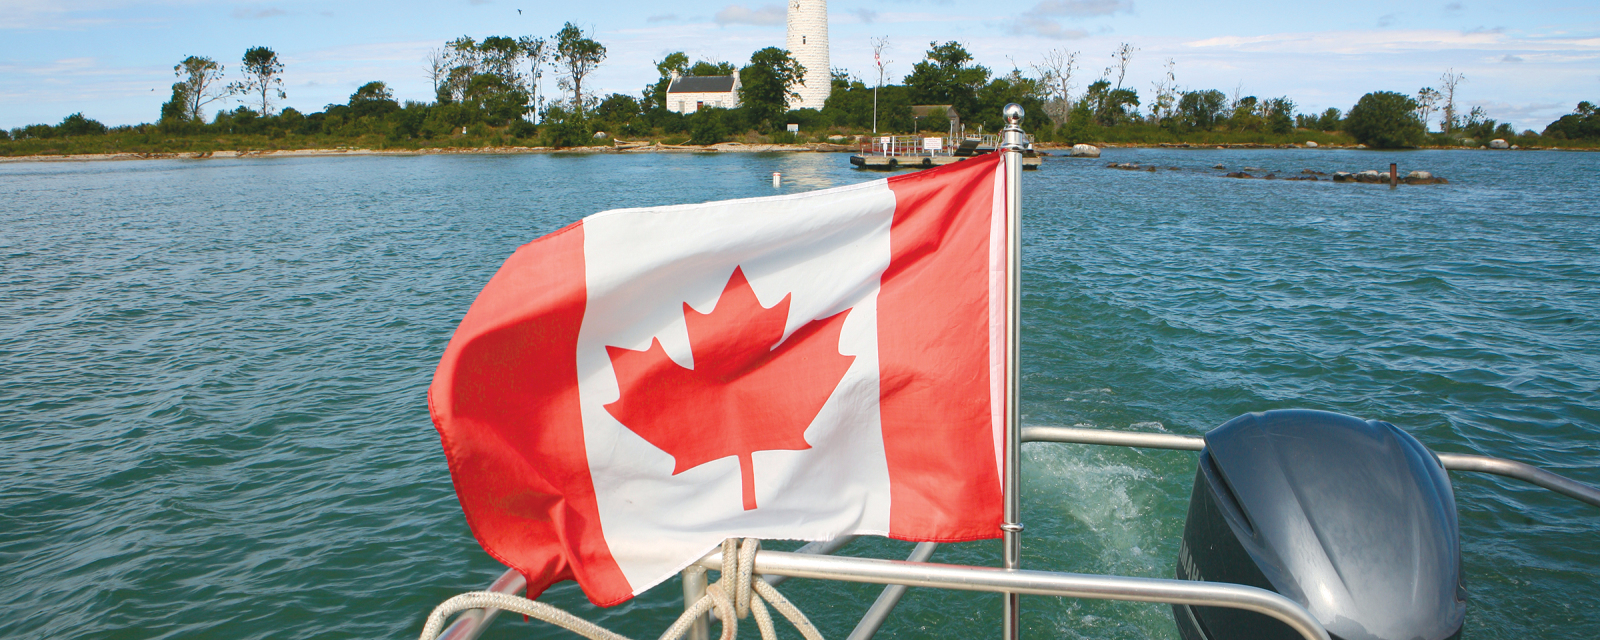 Chantry Island Boat Tours